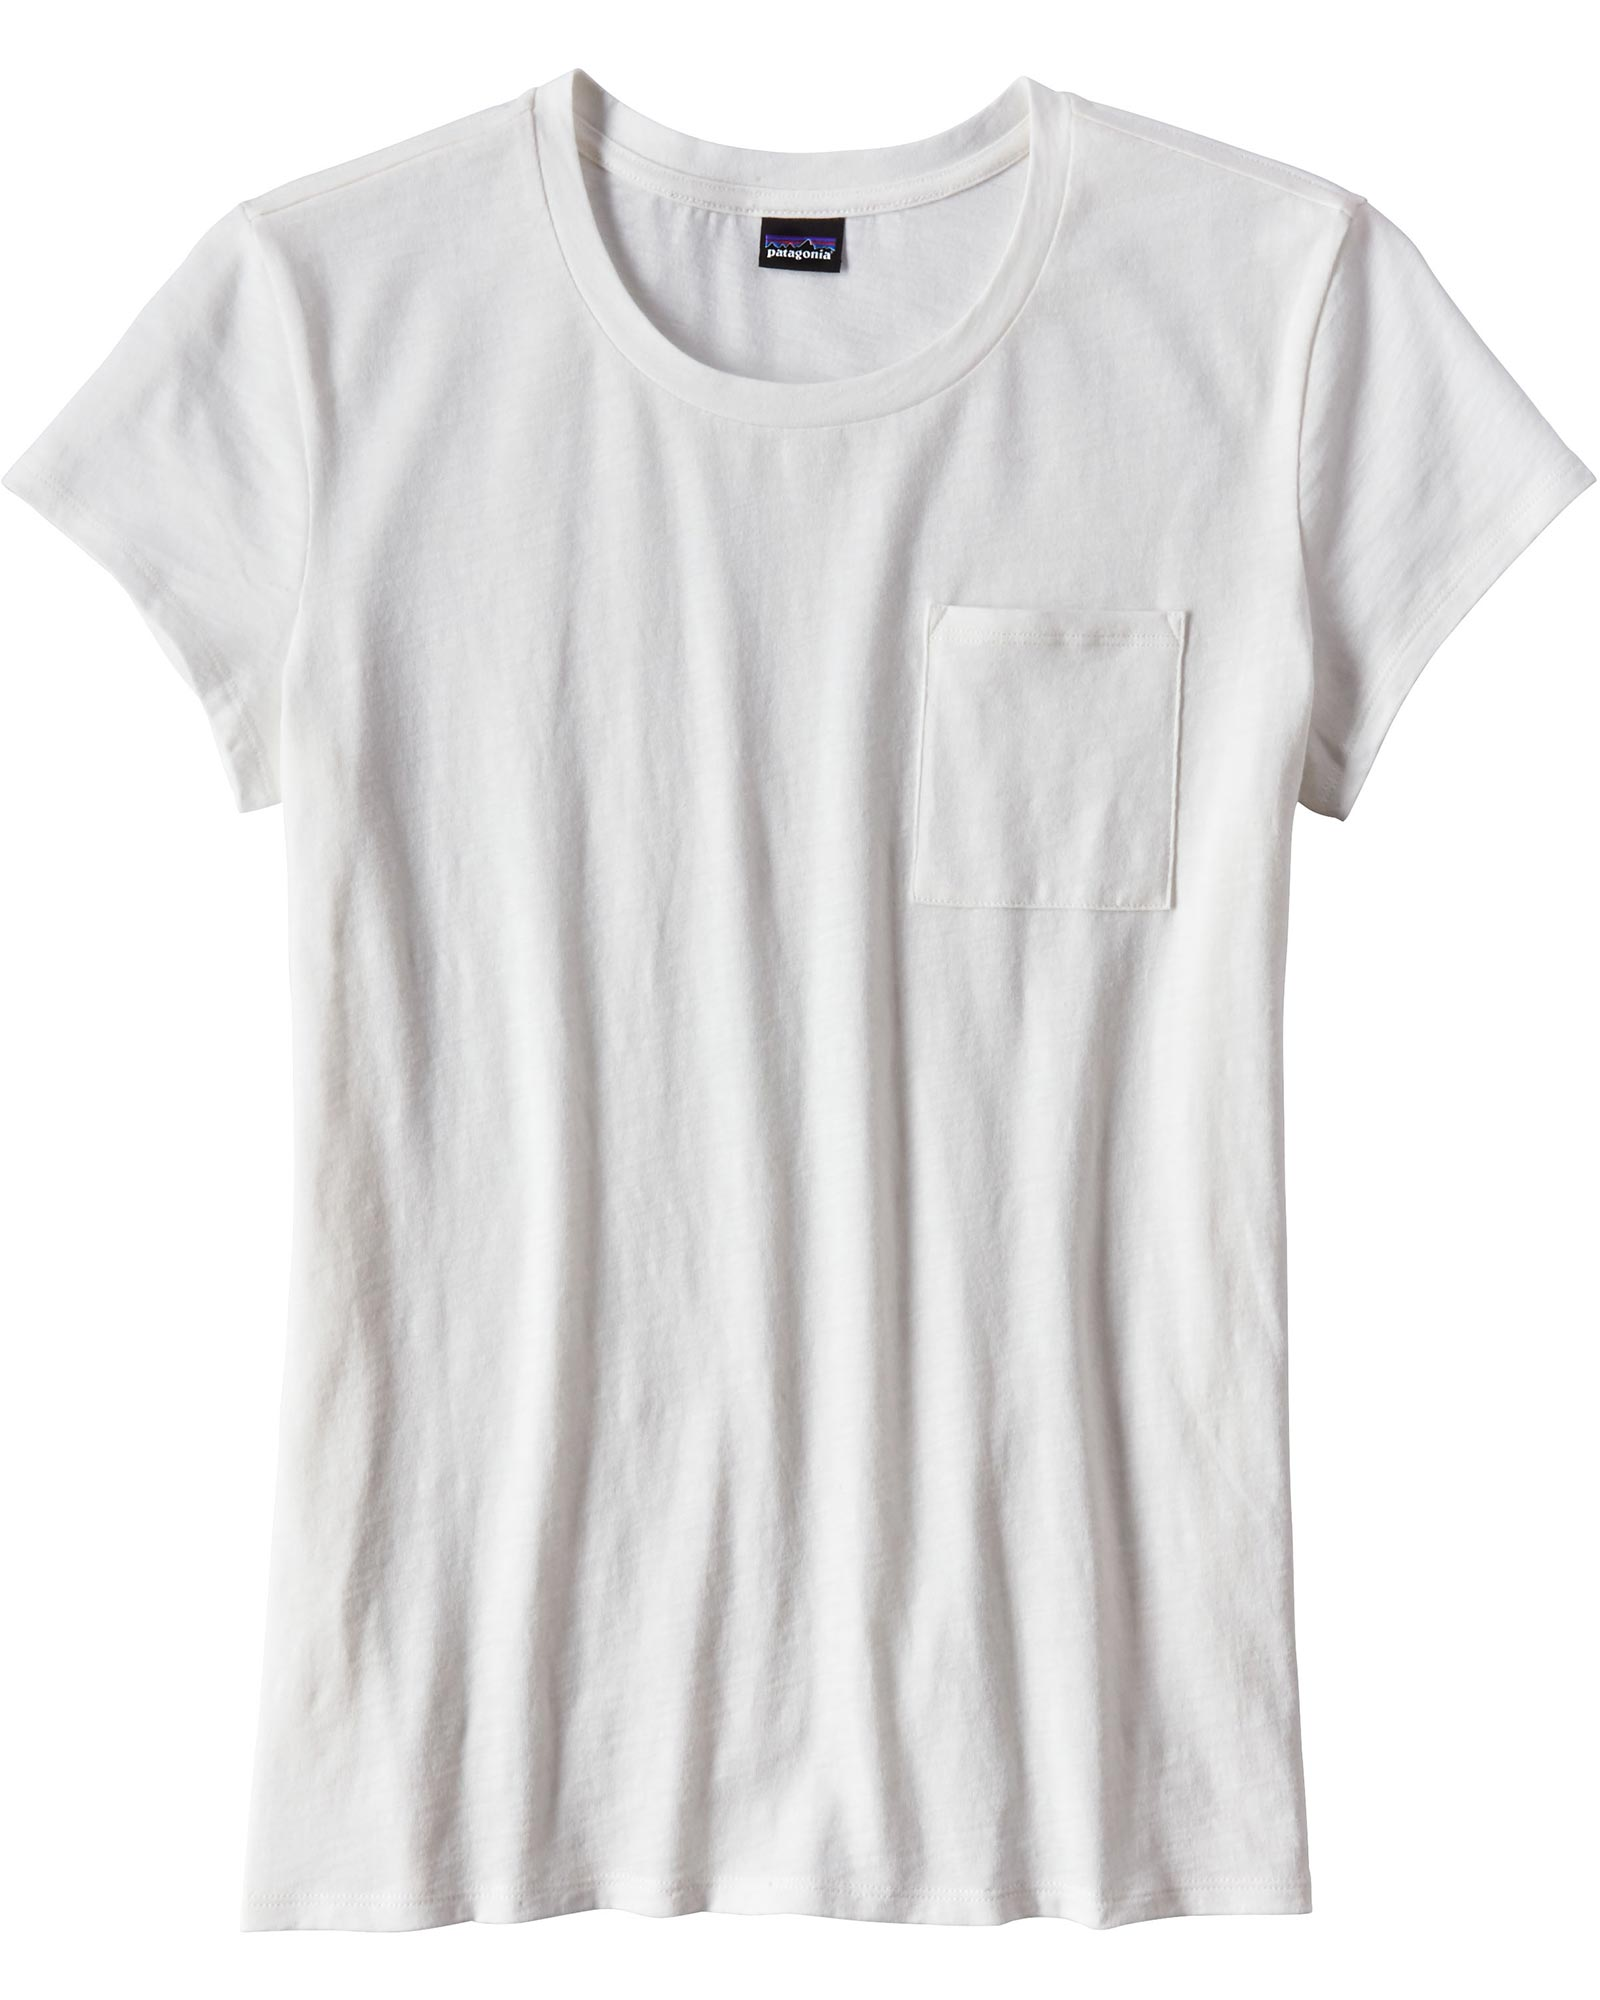 Patagonia Women's Mainstay T-Shirt 0